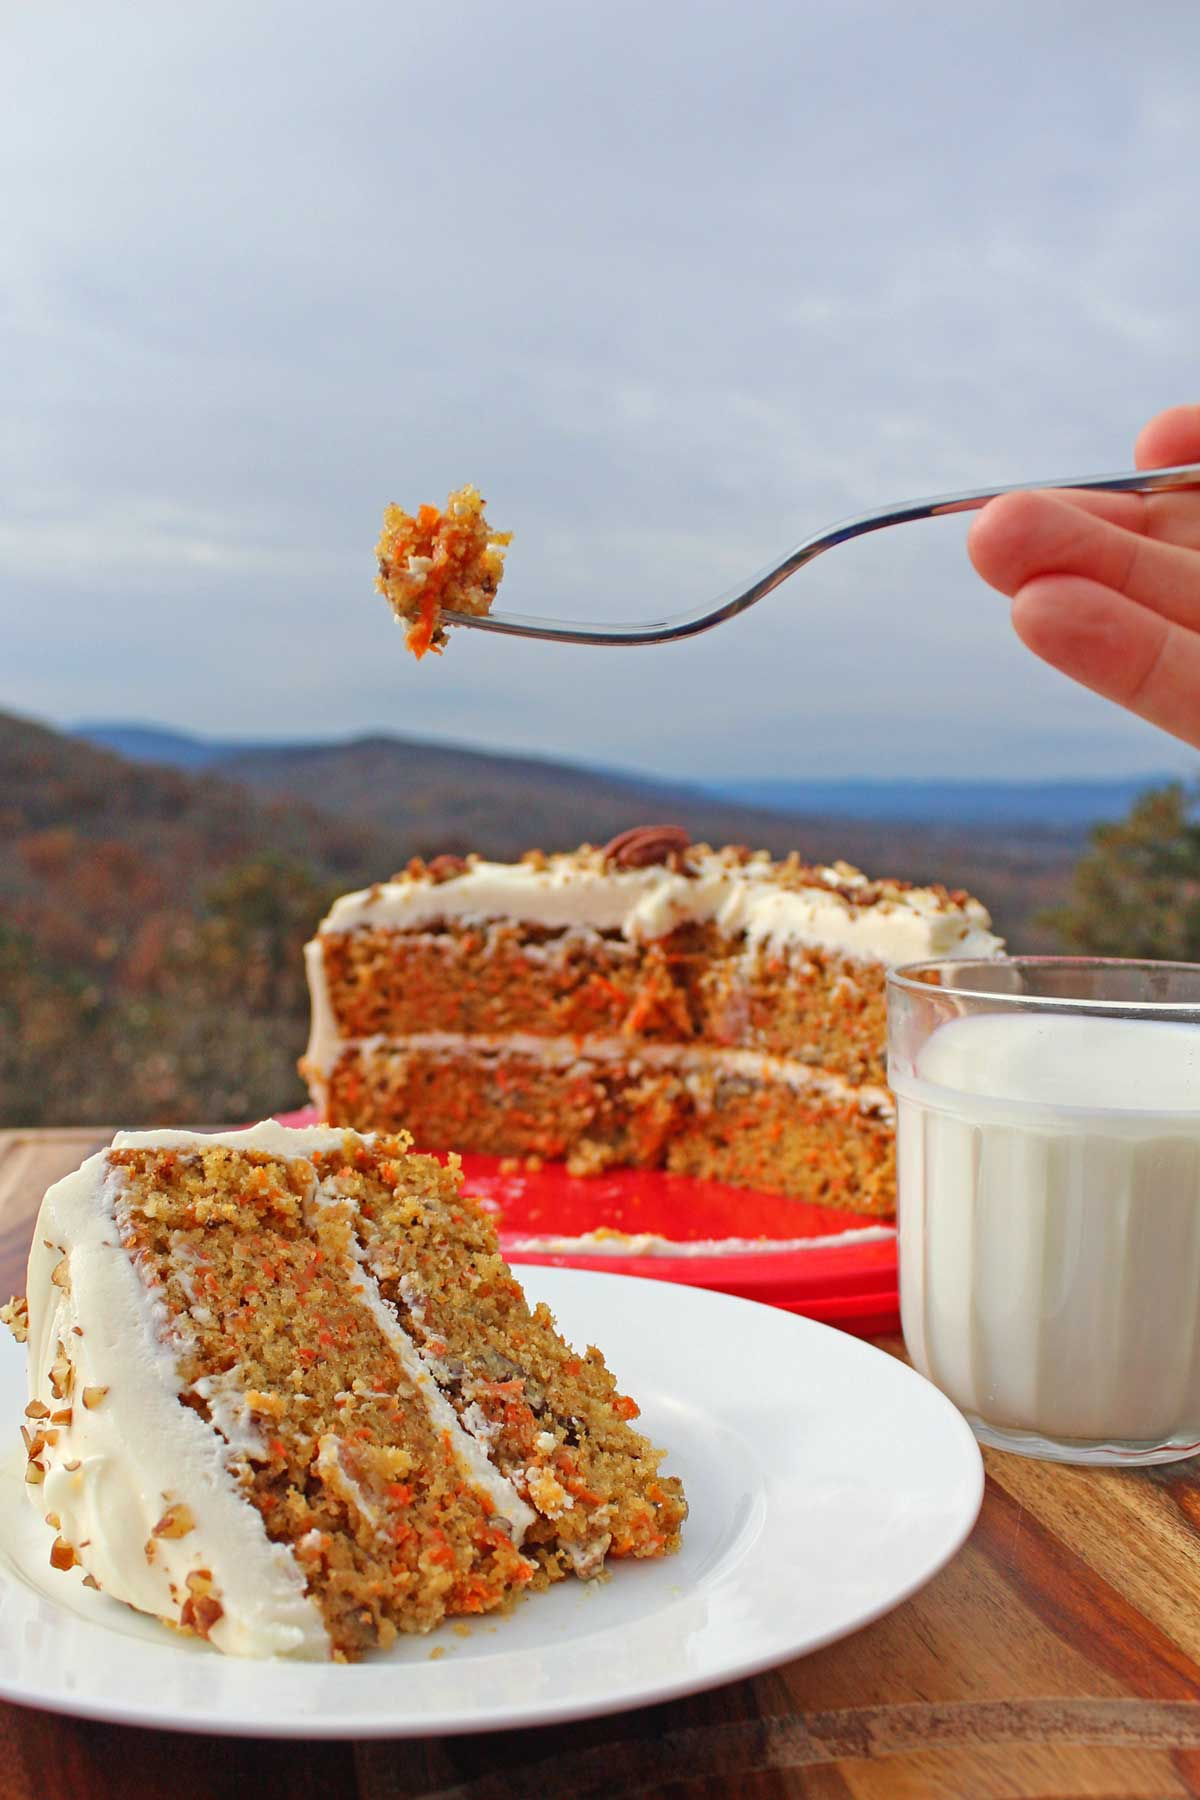 The sweetness of the carrots, the warmth of the cinnamon and ginger wrapped in a cream cheese frosting with pecans makes this the ultimate carrot cake!